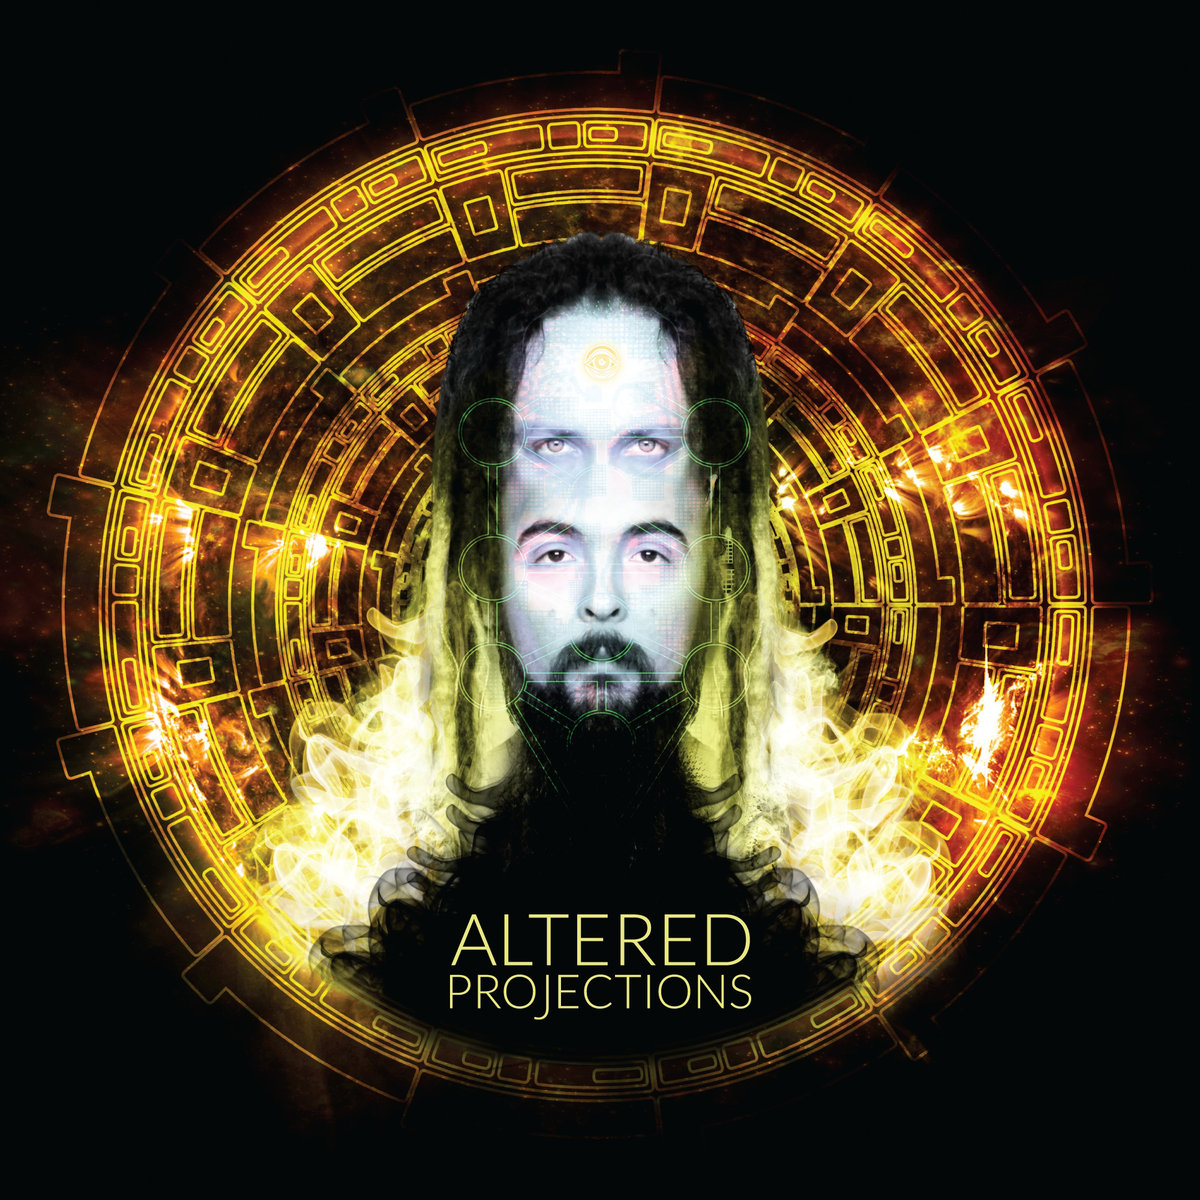 Zebbler Encanti Experience - Altered Projections @ 'Altered Projections' album (boston, idm)